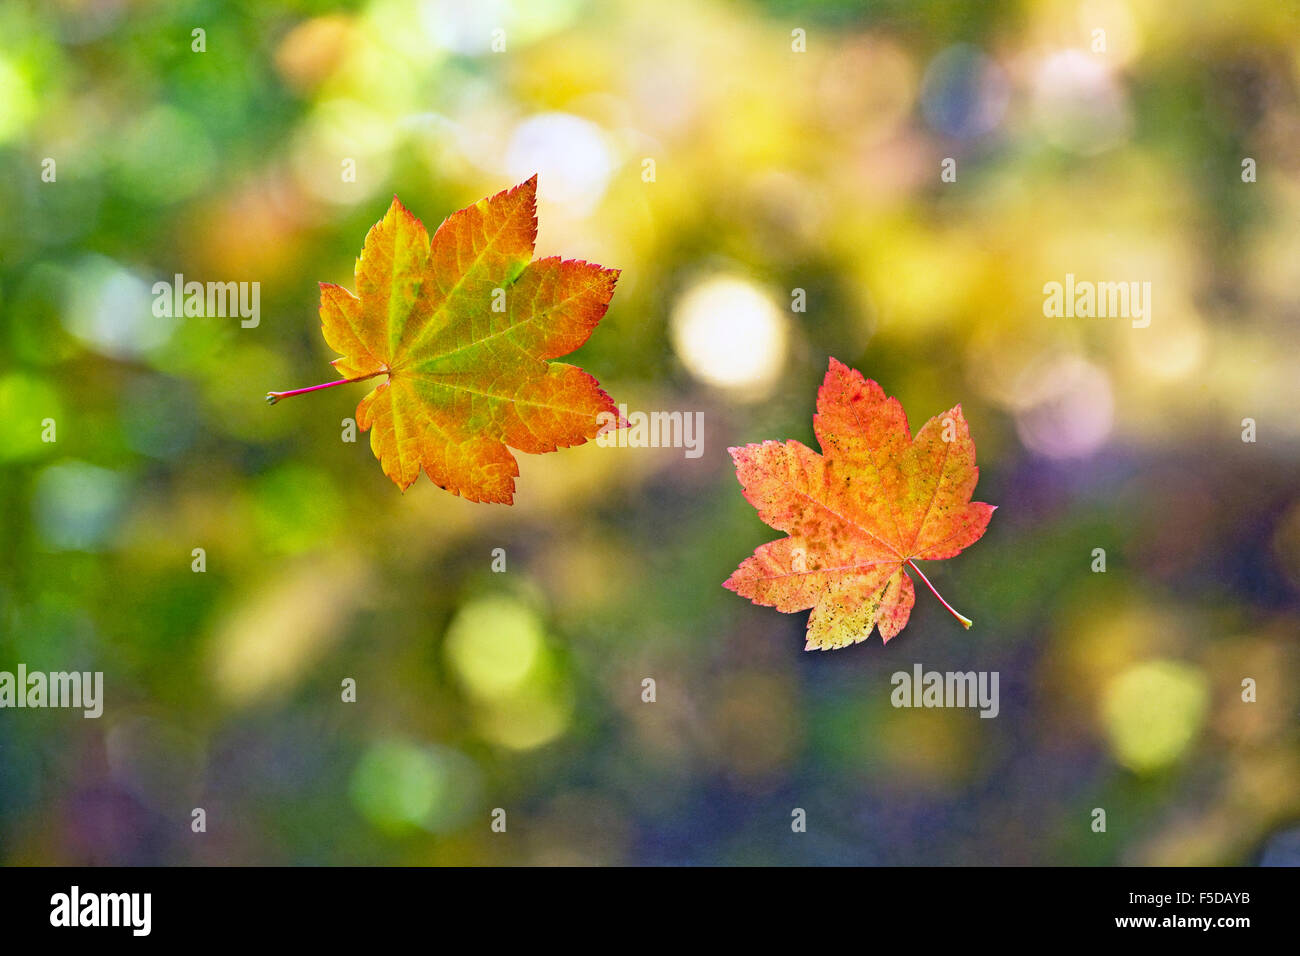 Leaves falling from a maple tree in the autumn - Stock Image